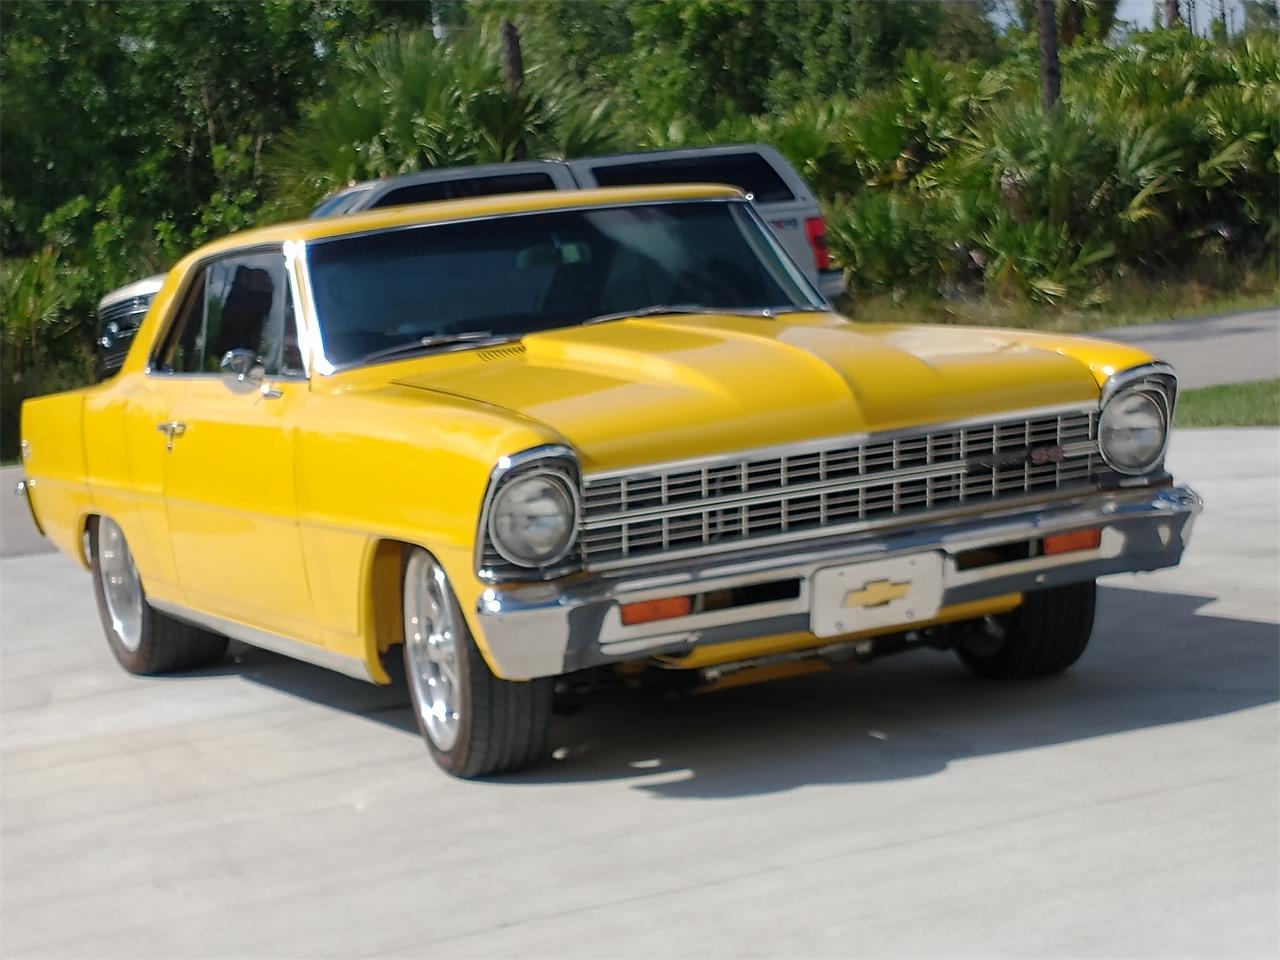 1967 Chevrolet Chevy II Nova SS (CC-1416197) for sale in Ft. Myers, Florida